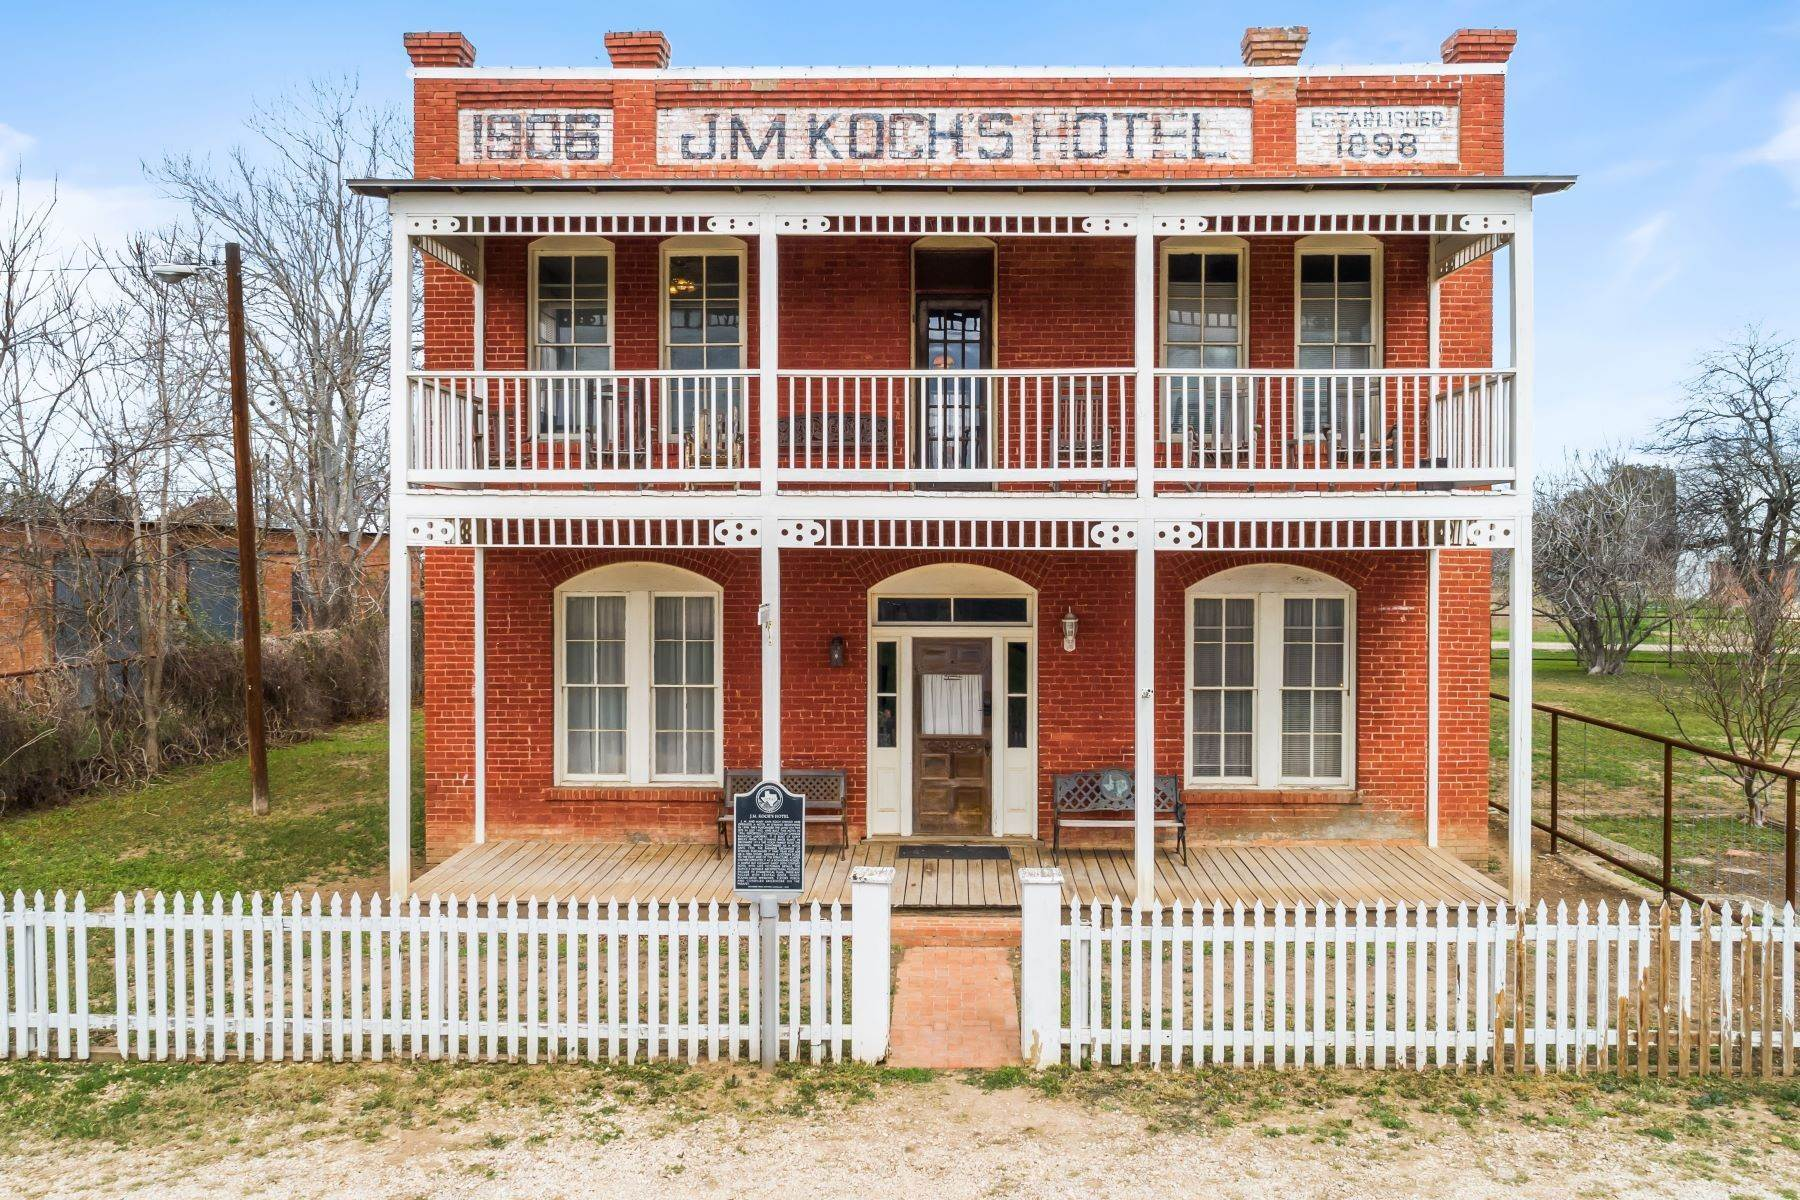 Single Family Homes for Sale at Historic J.M. Koch's Hotel 7254 County Road 525 D Hanis, Texas 78850 United States